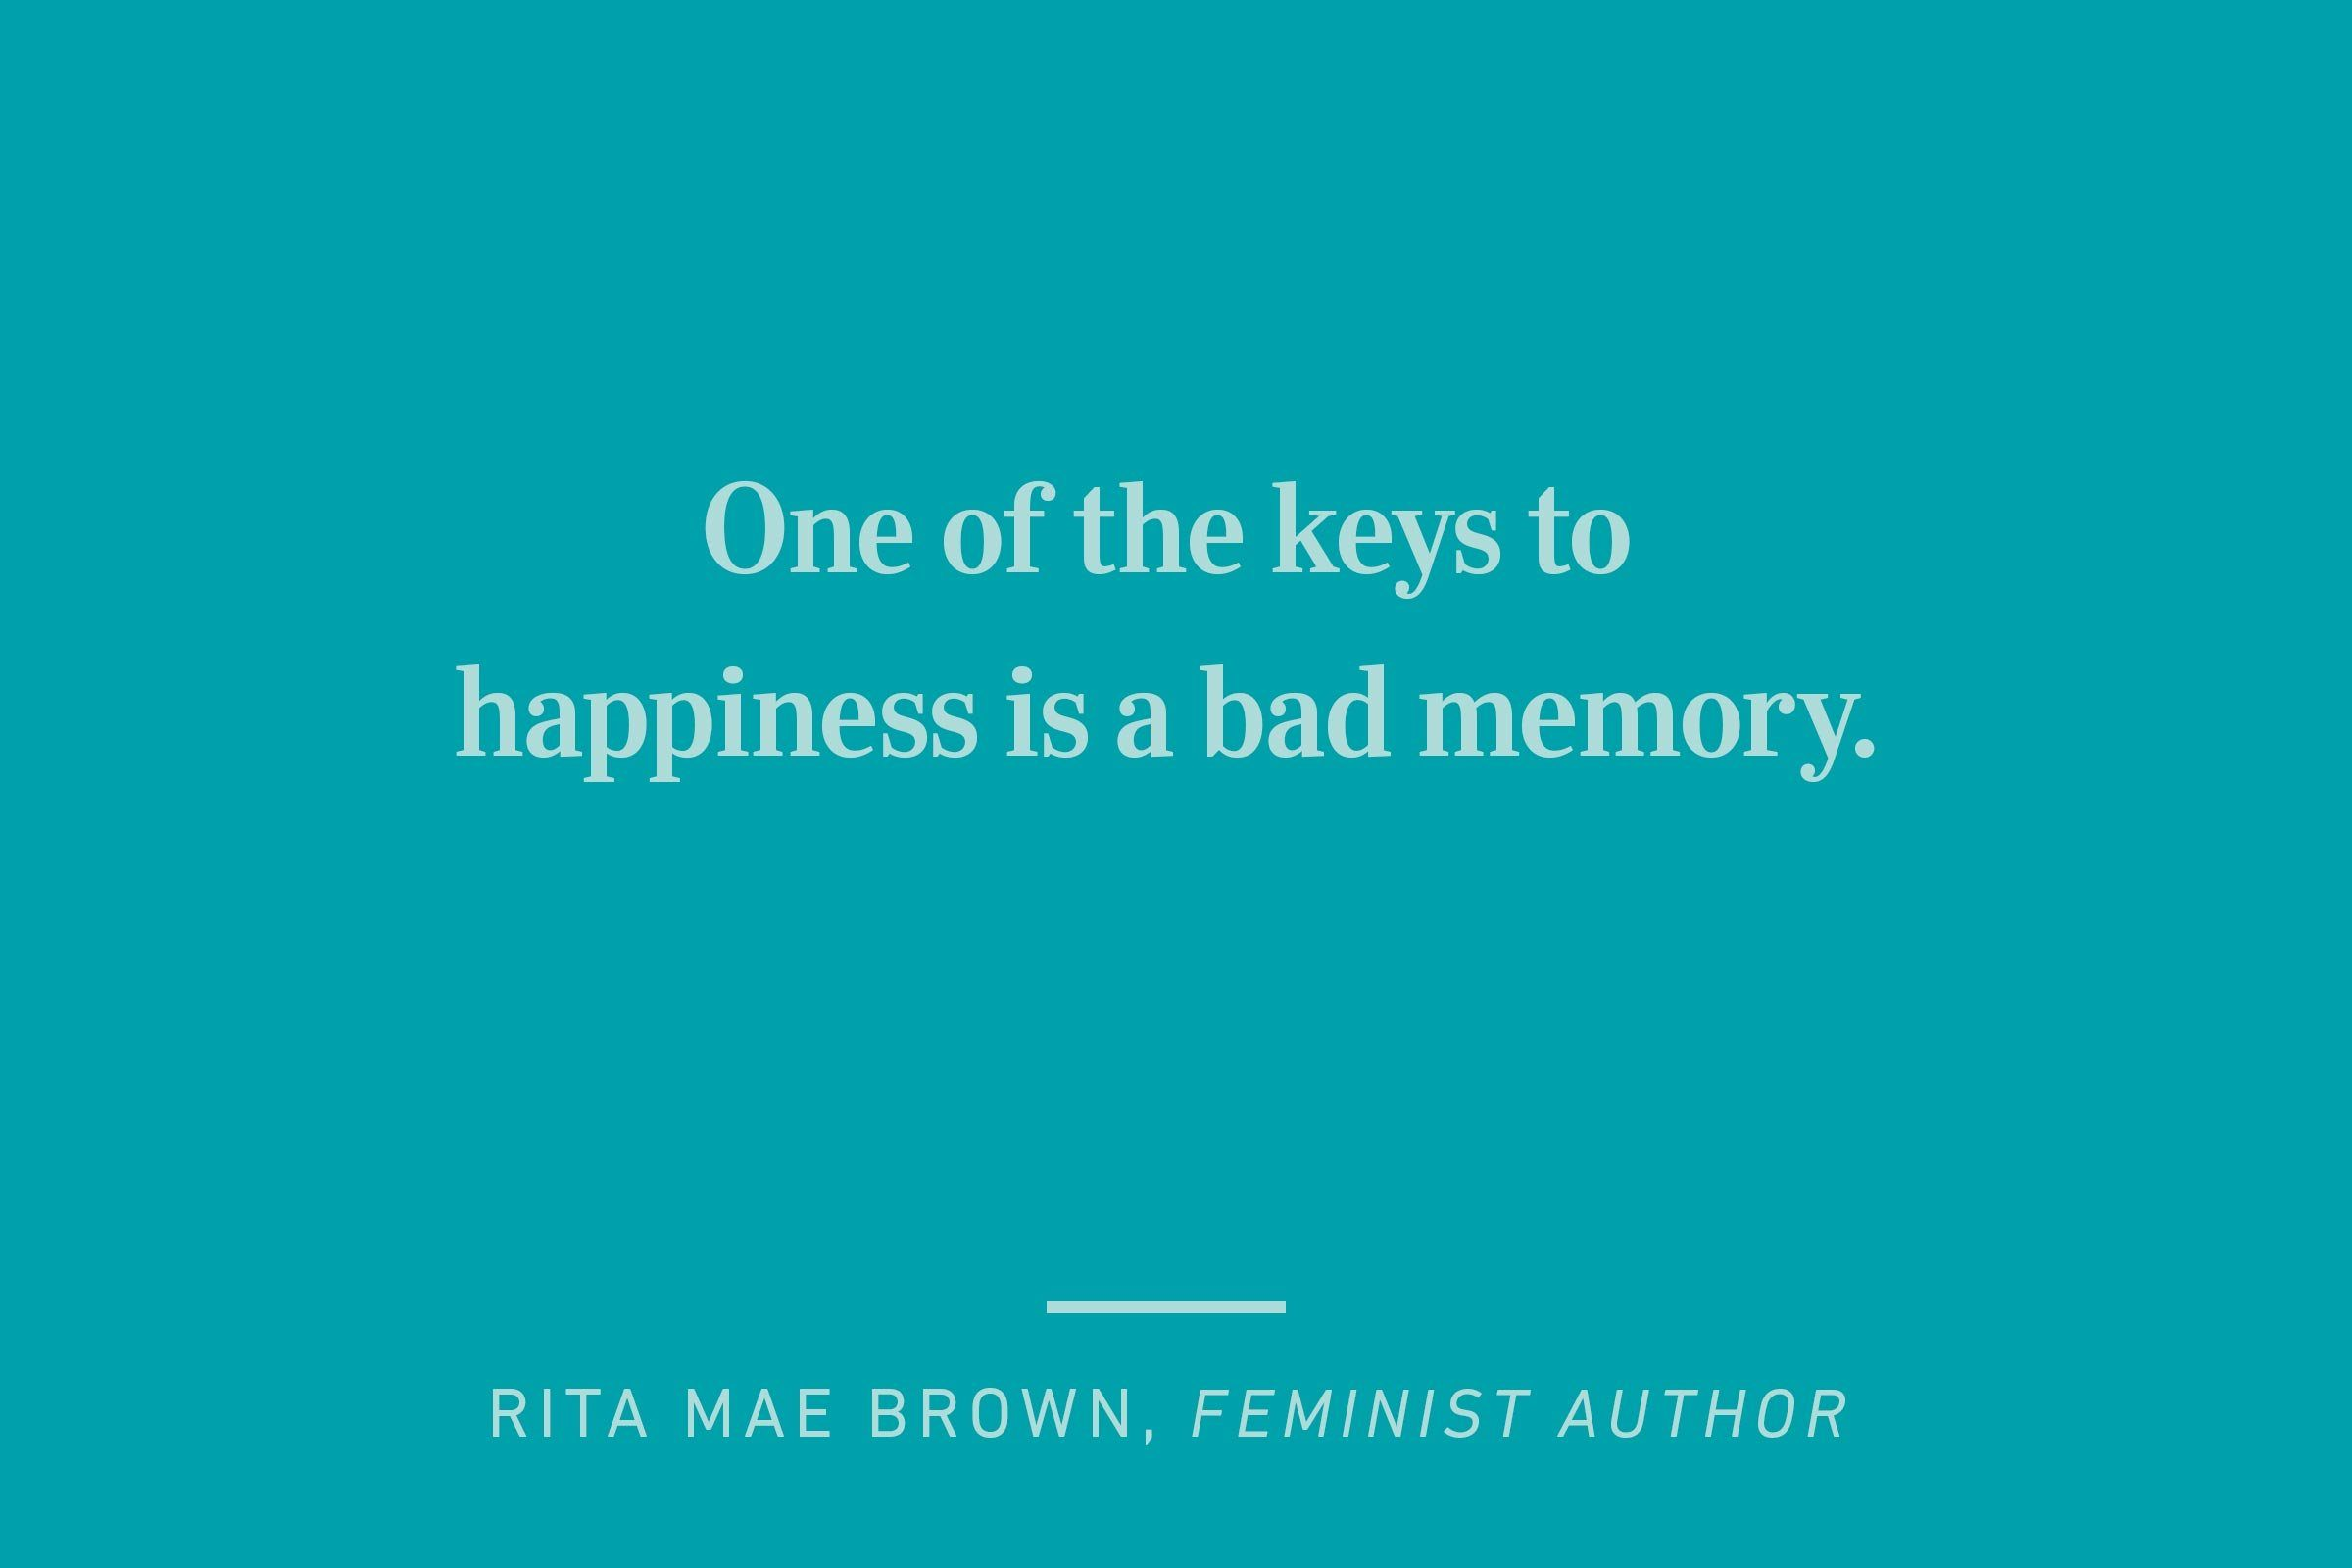 rita mae brown happiness quote